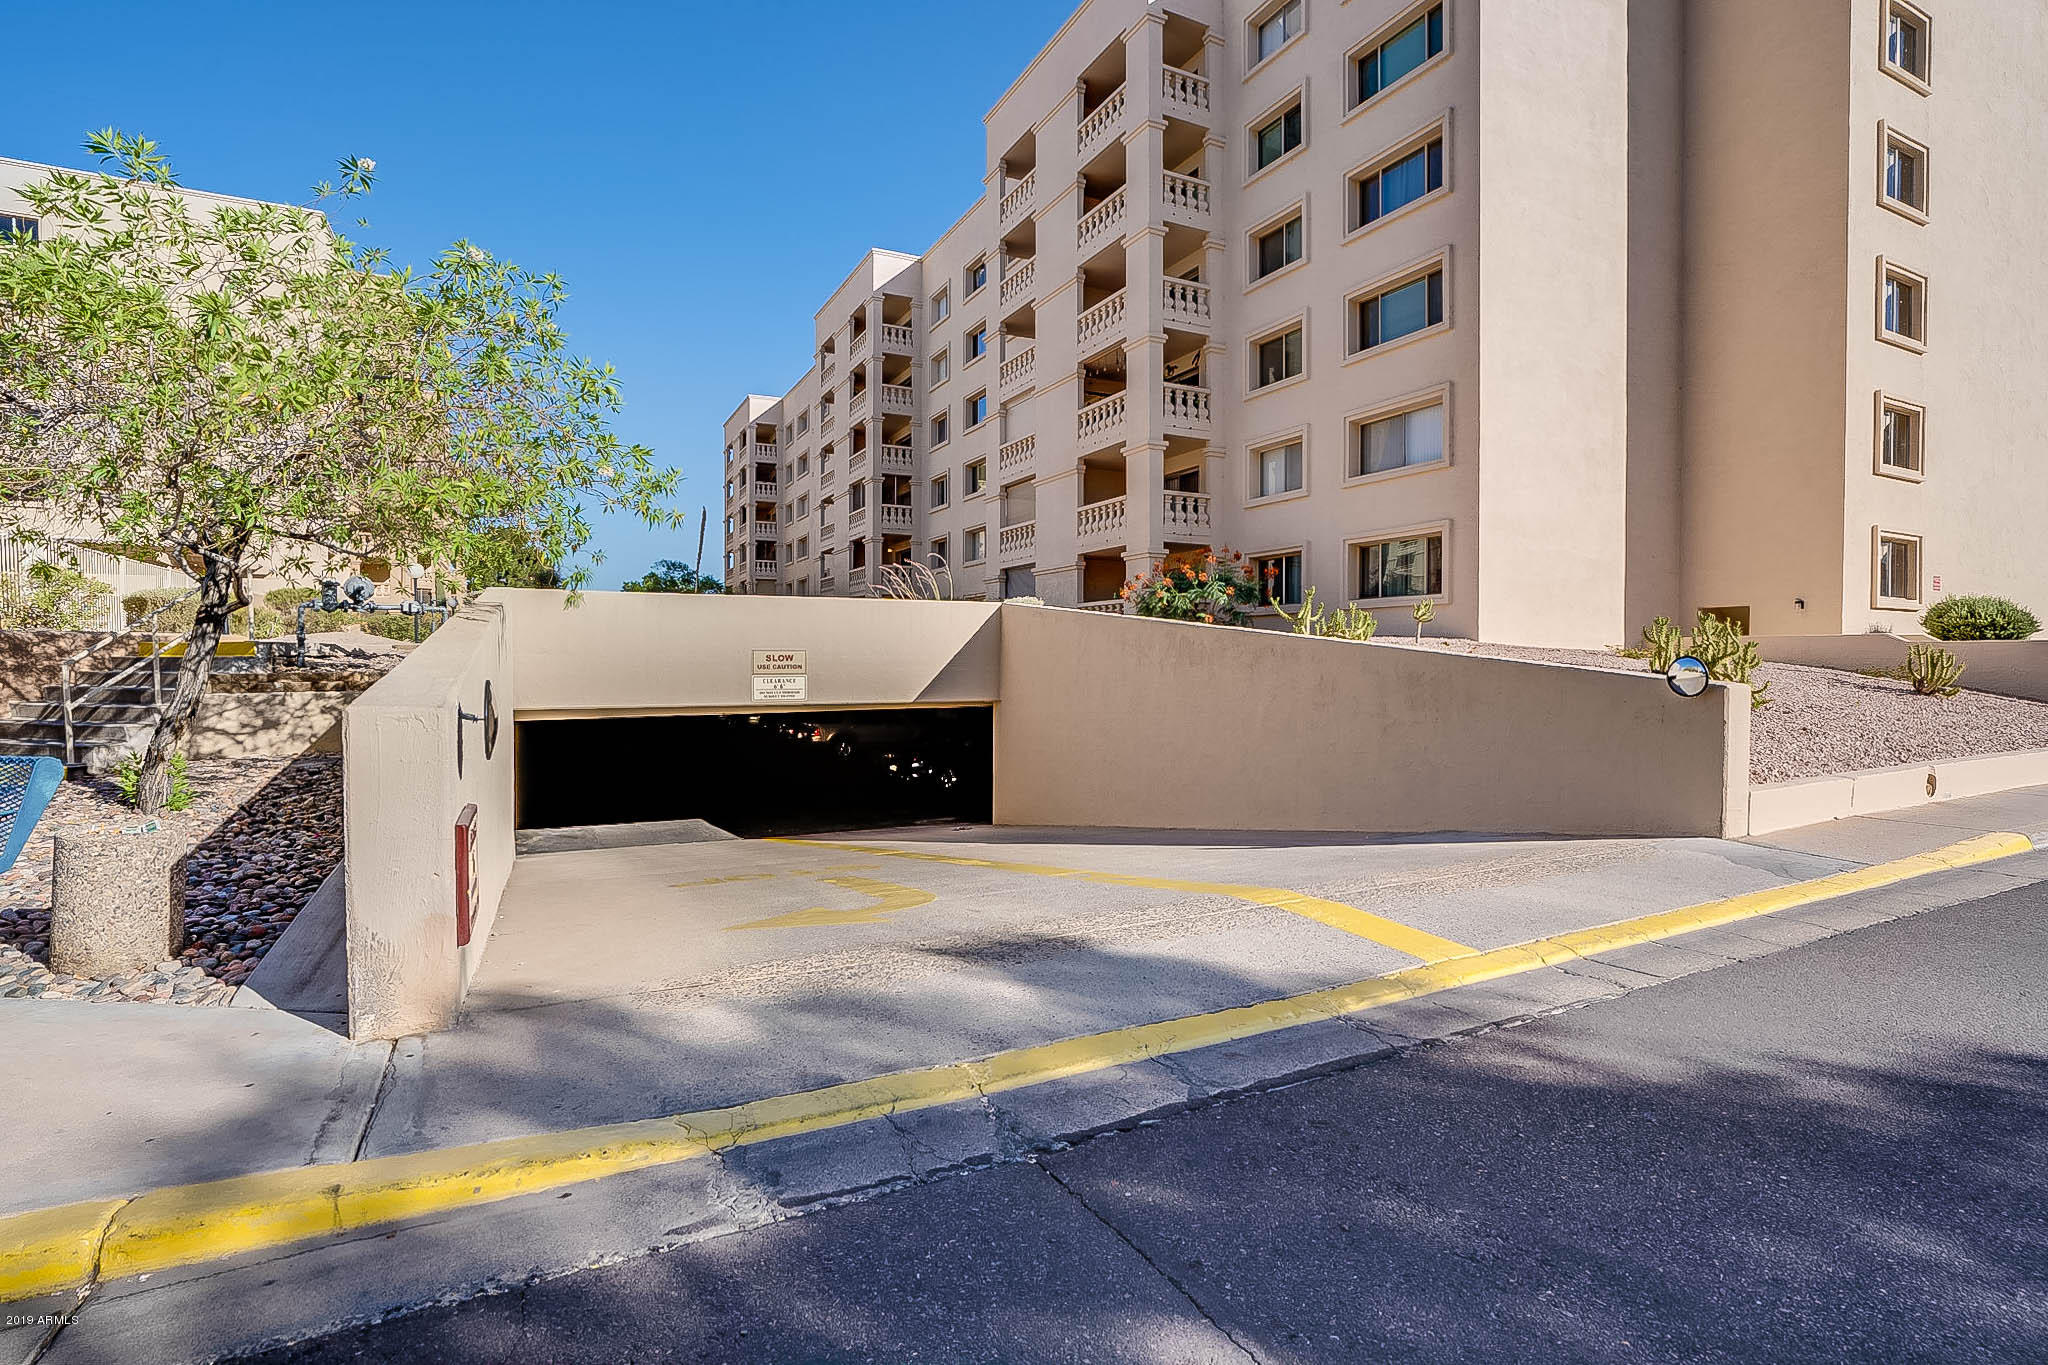 MLS 5941936 7940 E CAMELBACK Road Unit 409 Building 26, Scottsdale, AZ 85251 Scottsdale AZ Scottsdale Shadows